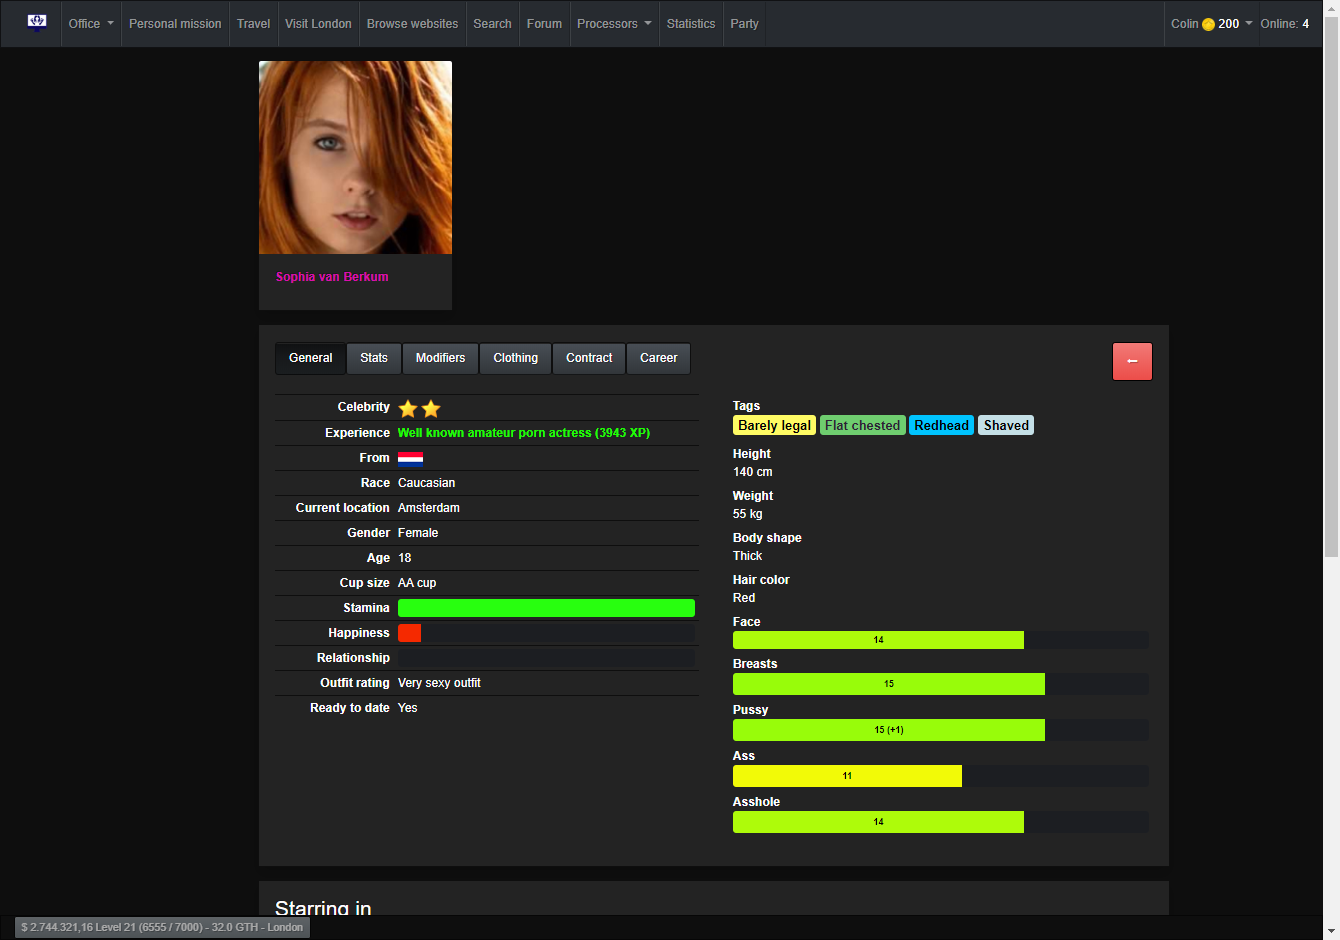 A girl's profile showing the some statistics